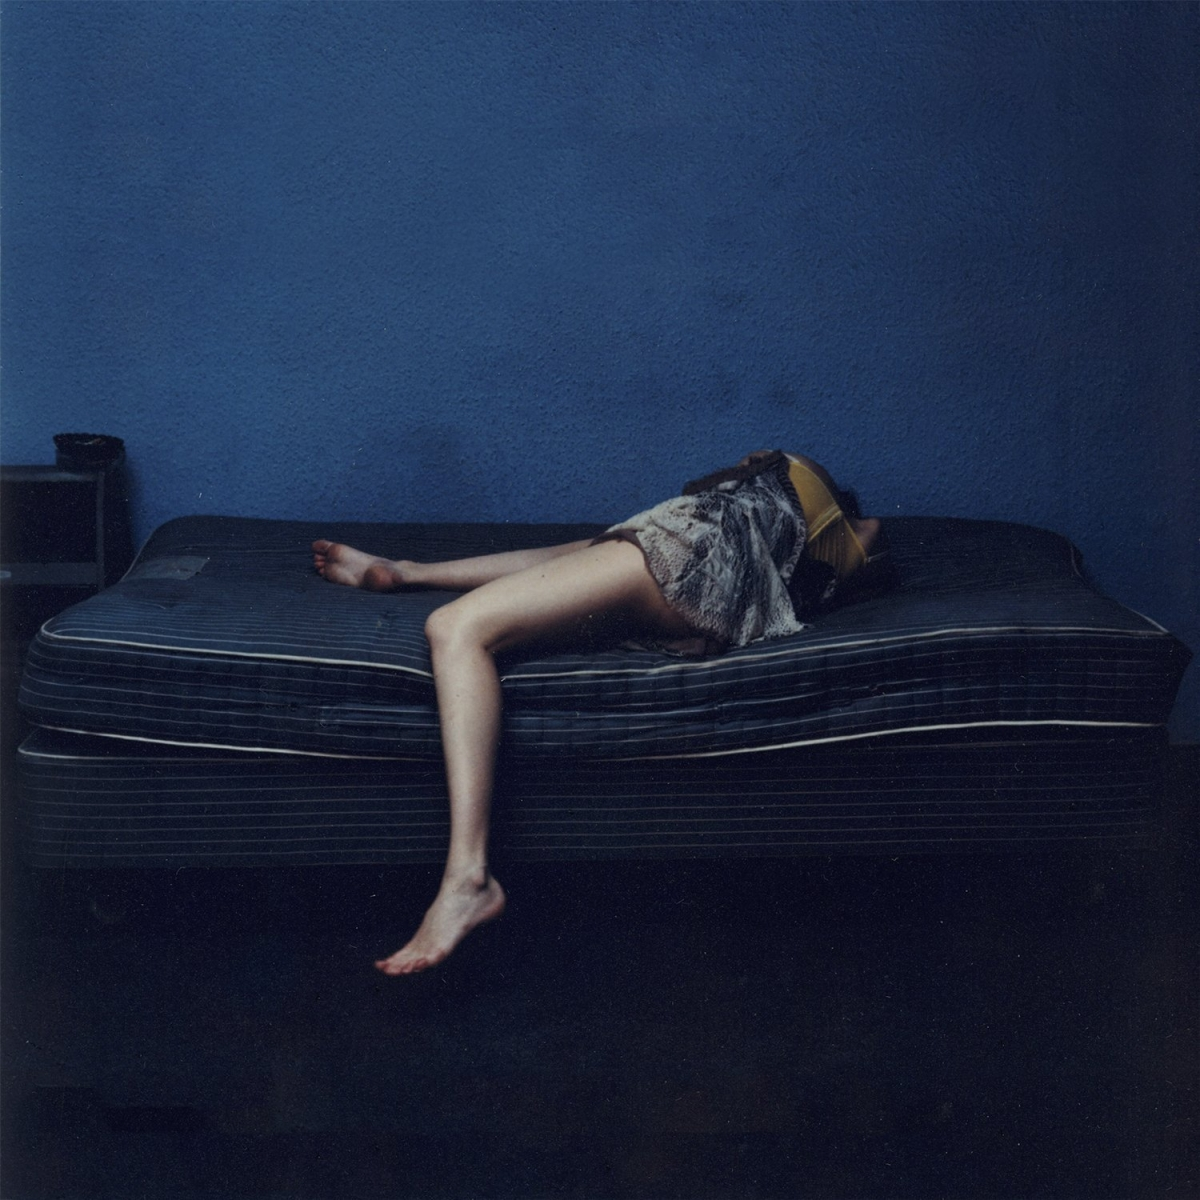 We Slept At Last - LP - Marika Hackman